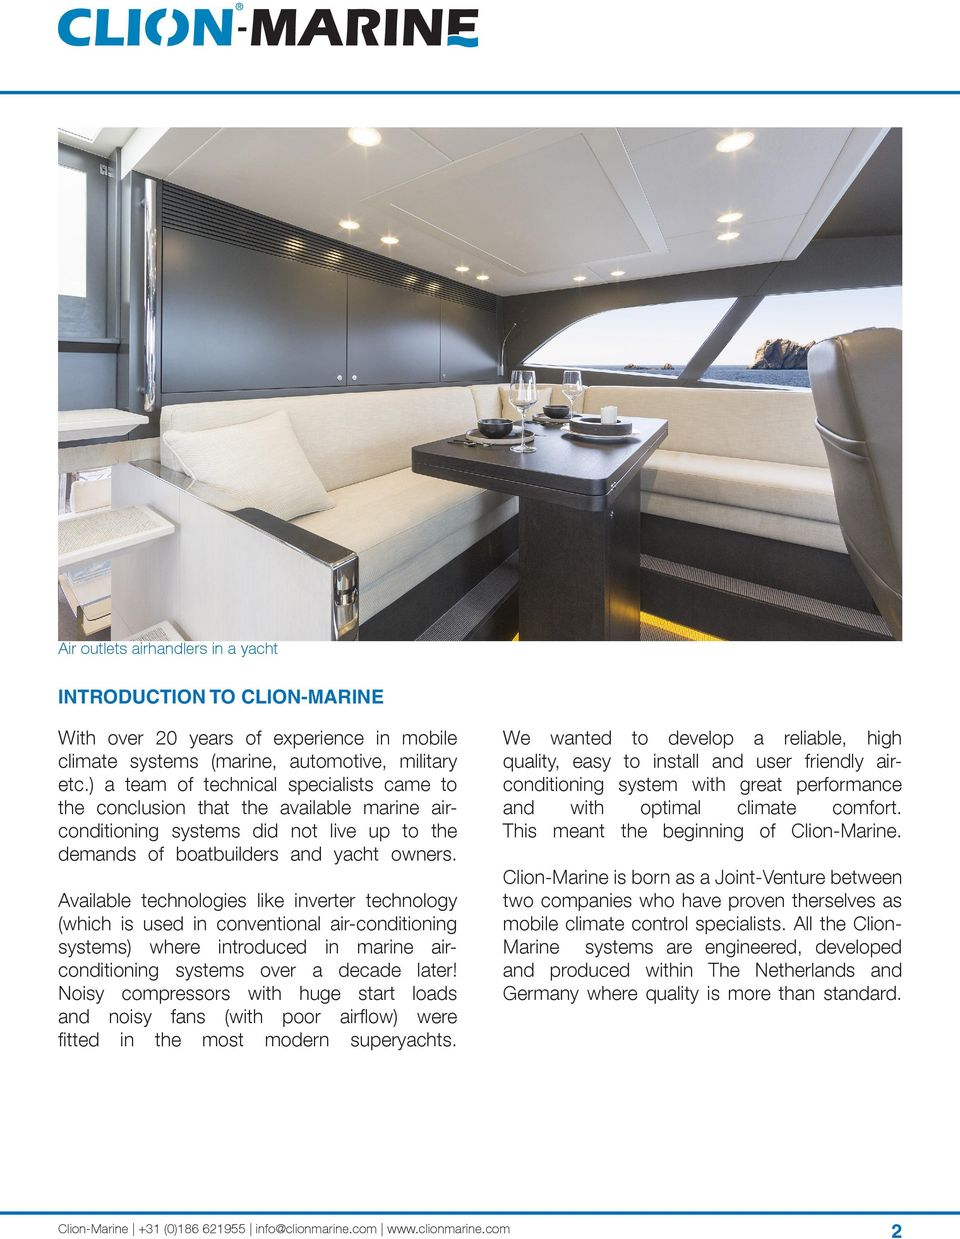 The most comfortable air-conditioning systems for yachts and